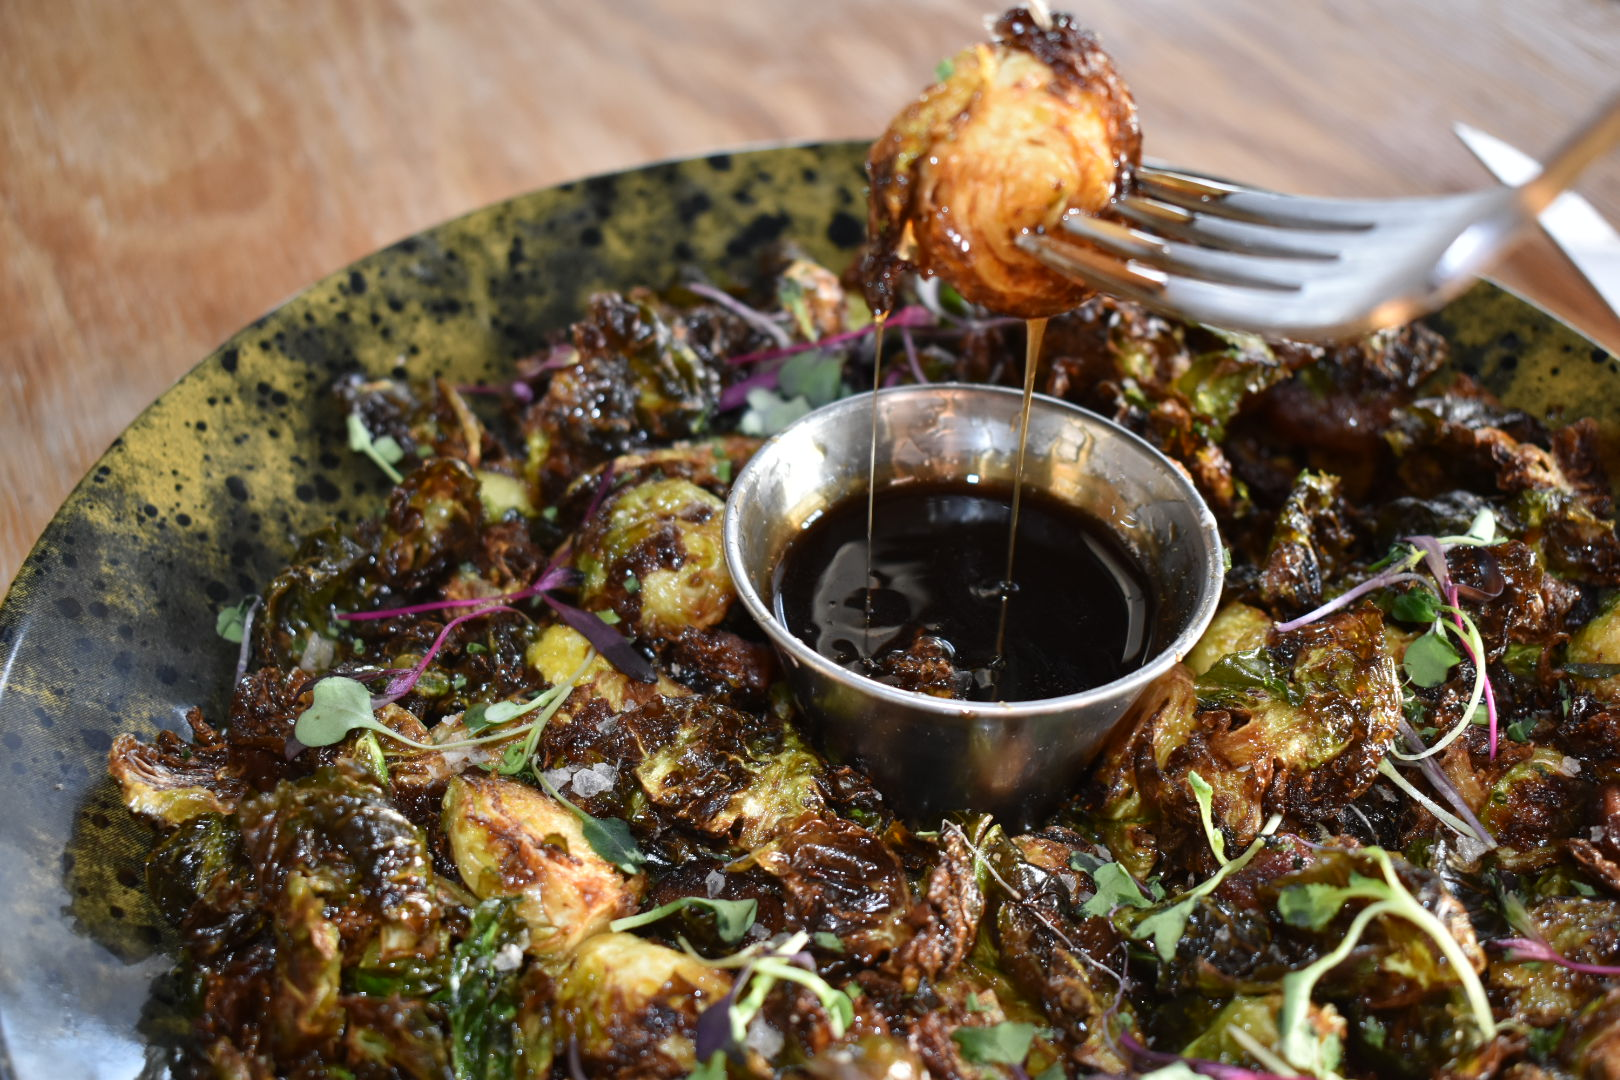 Fork elevating Brussel sprout in carmelized glaze dripping into sauce dish